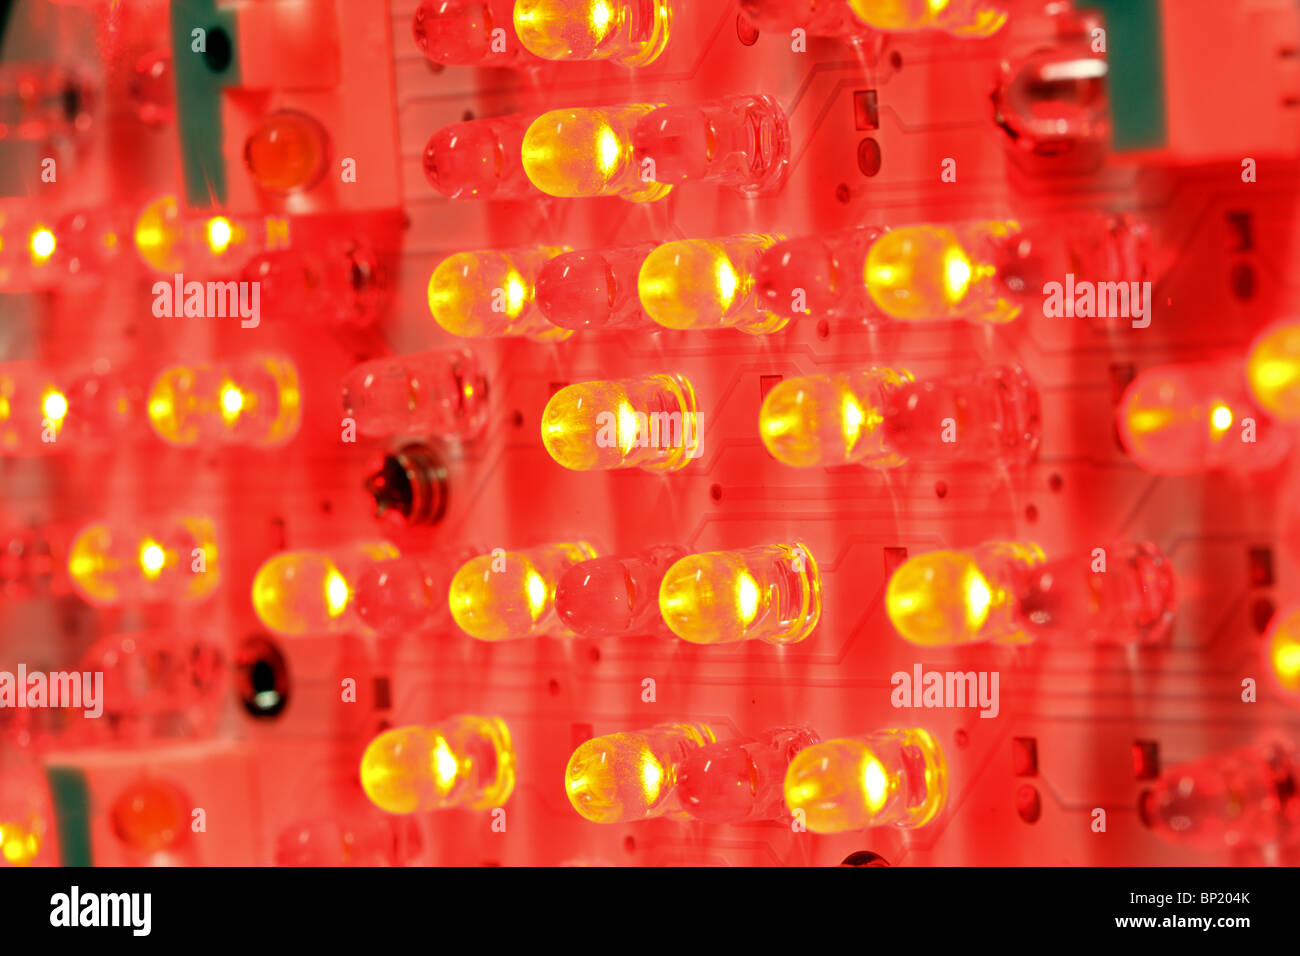 Red LED, electroluminescent diode, light-emitting diode. Stock Photo